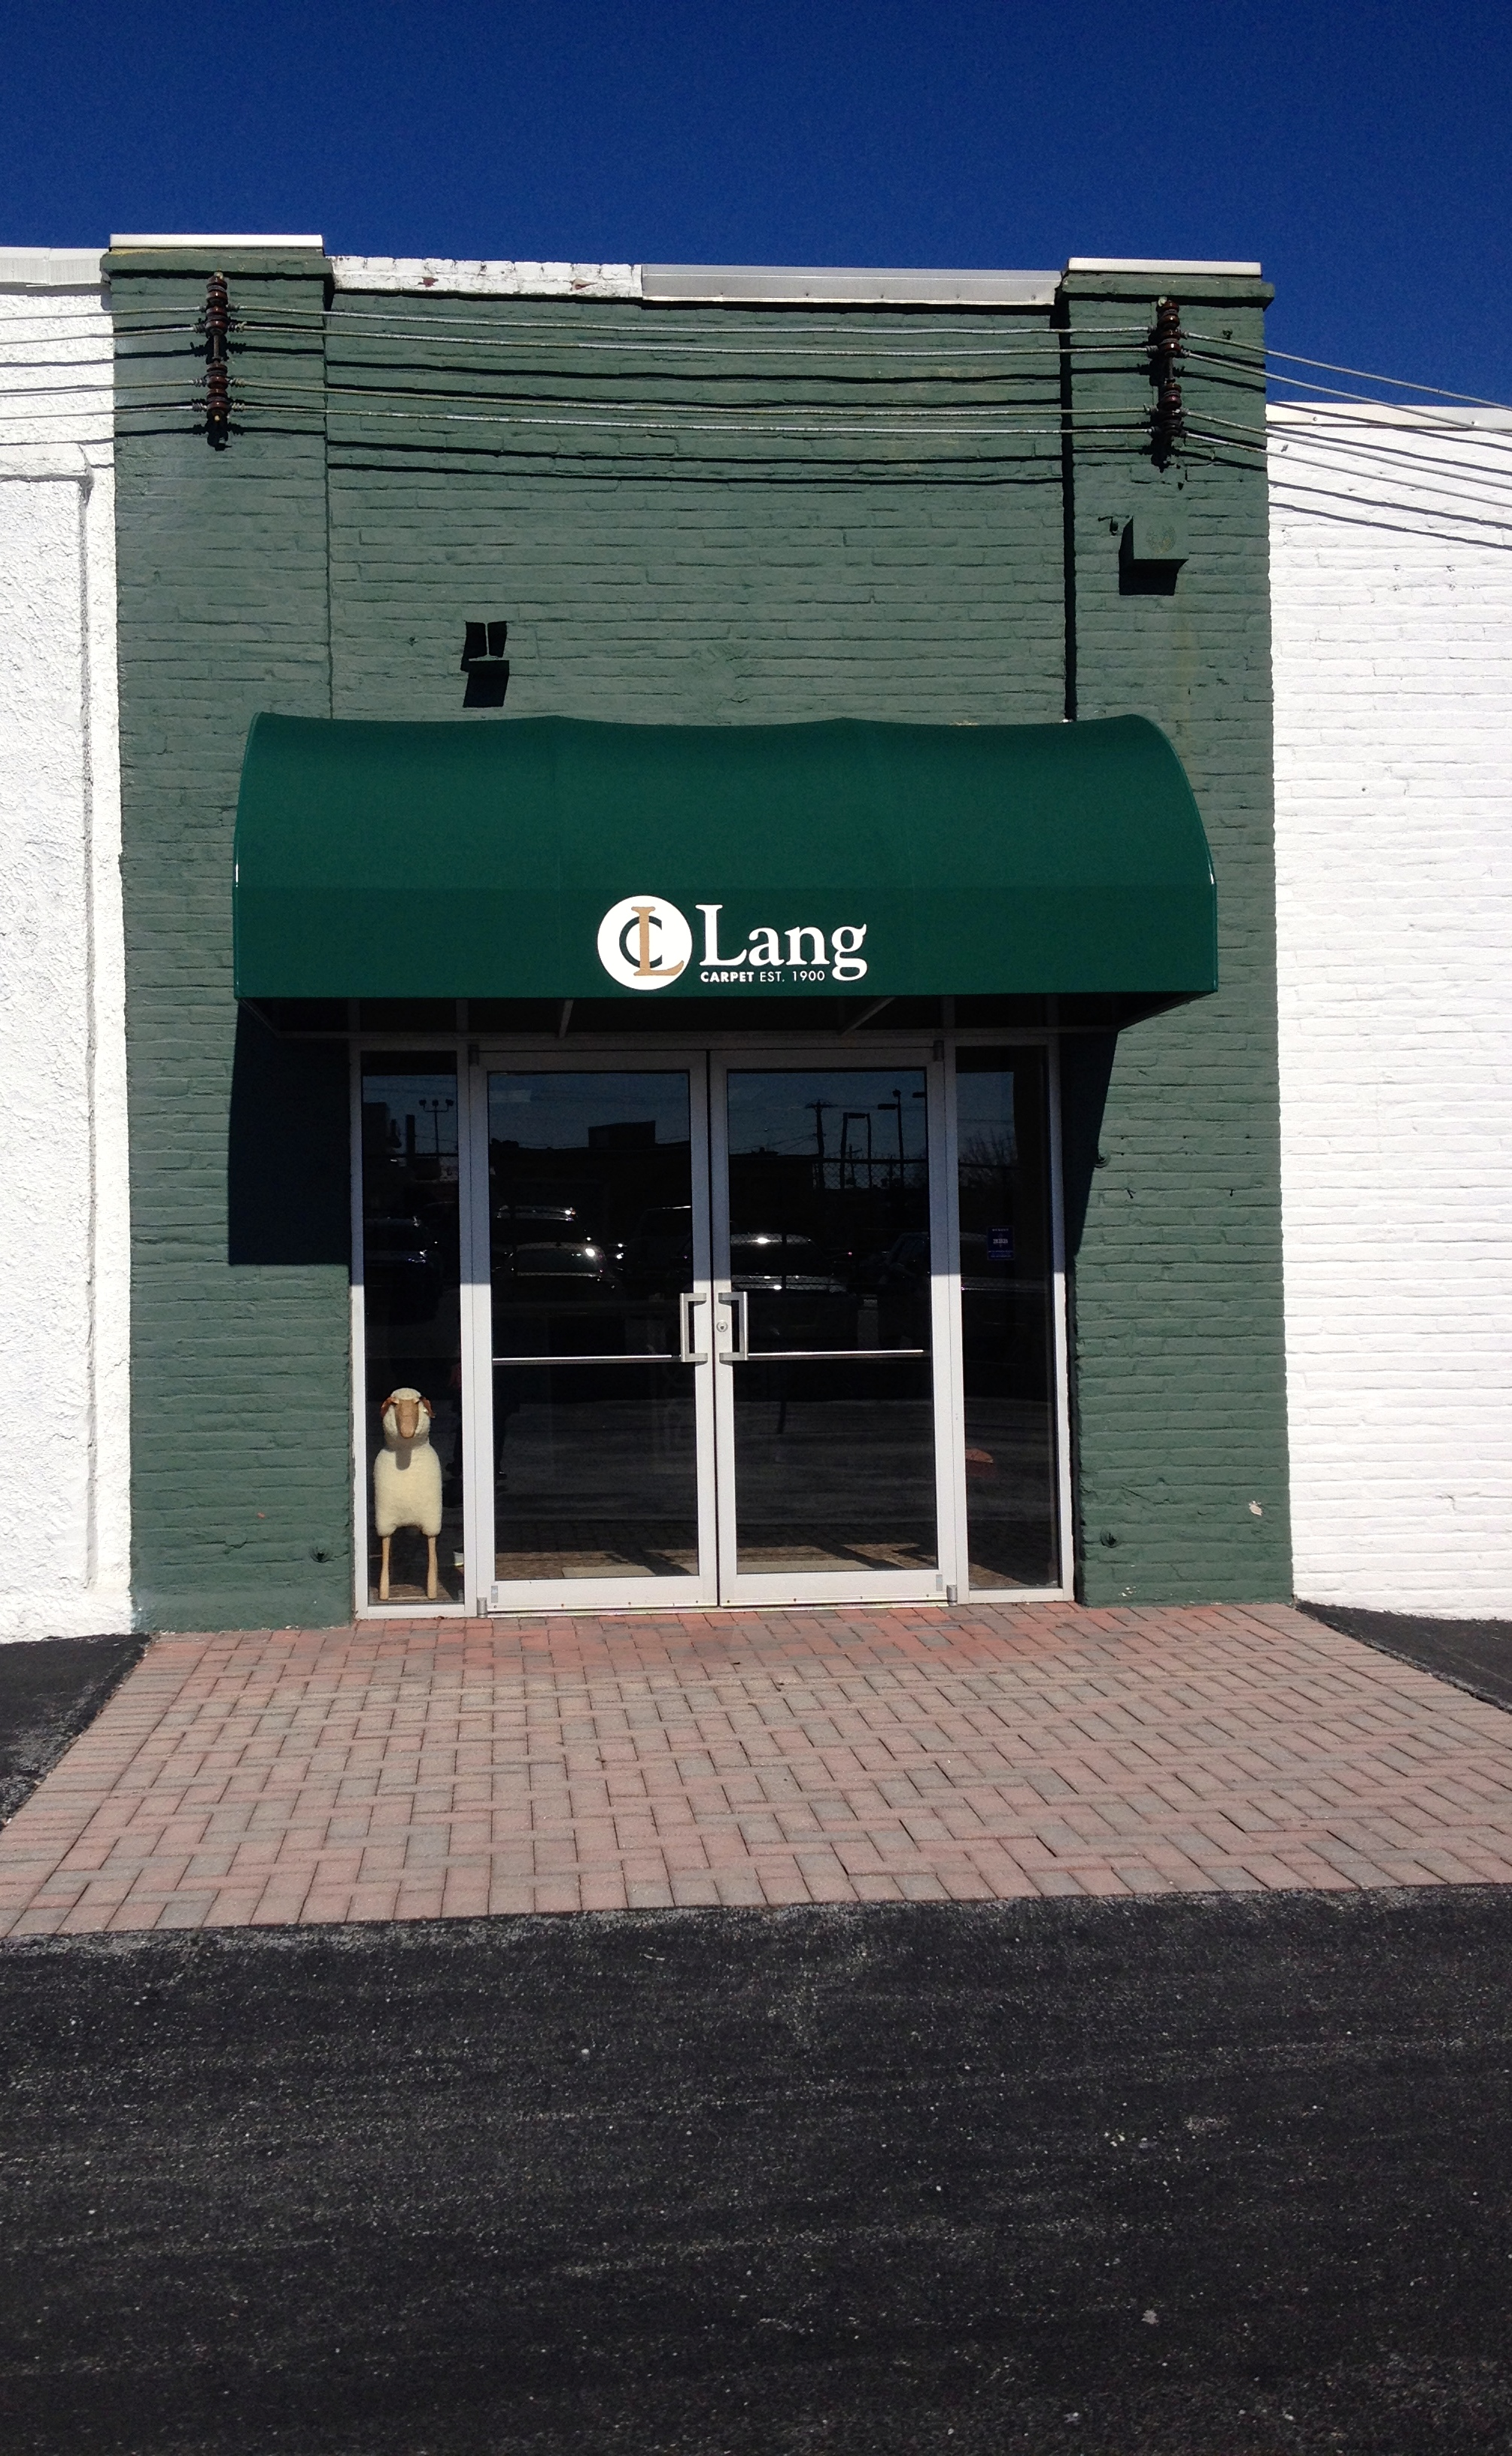 This picture is of our Lang Carpet front door. Our honorary sheep mascot is in the window.